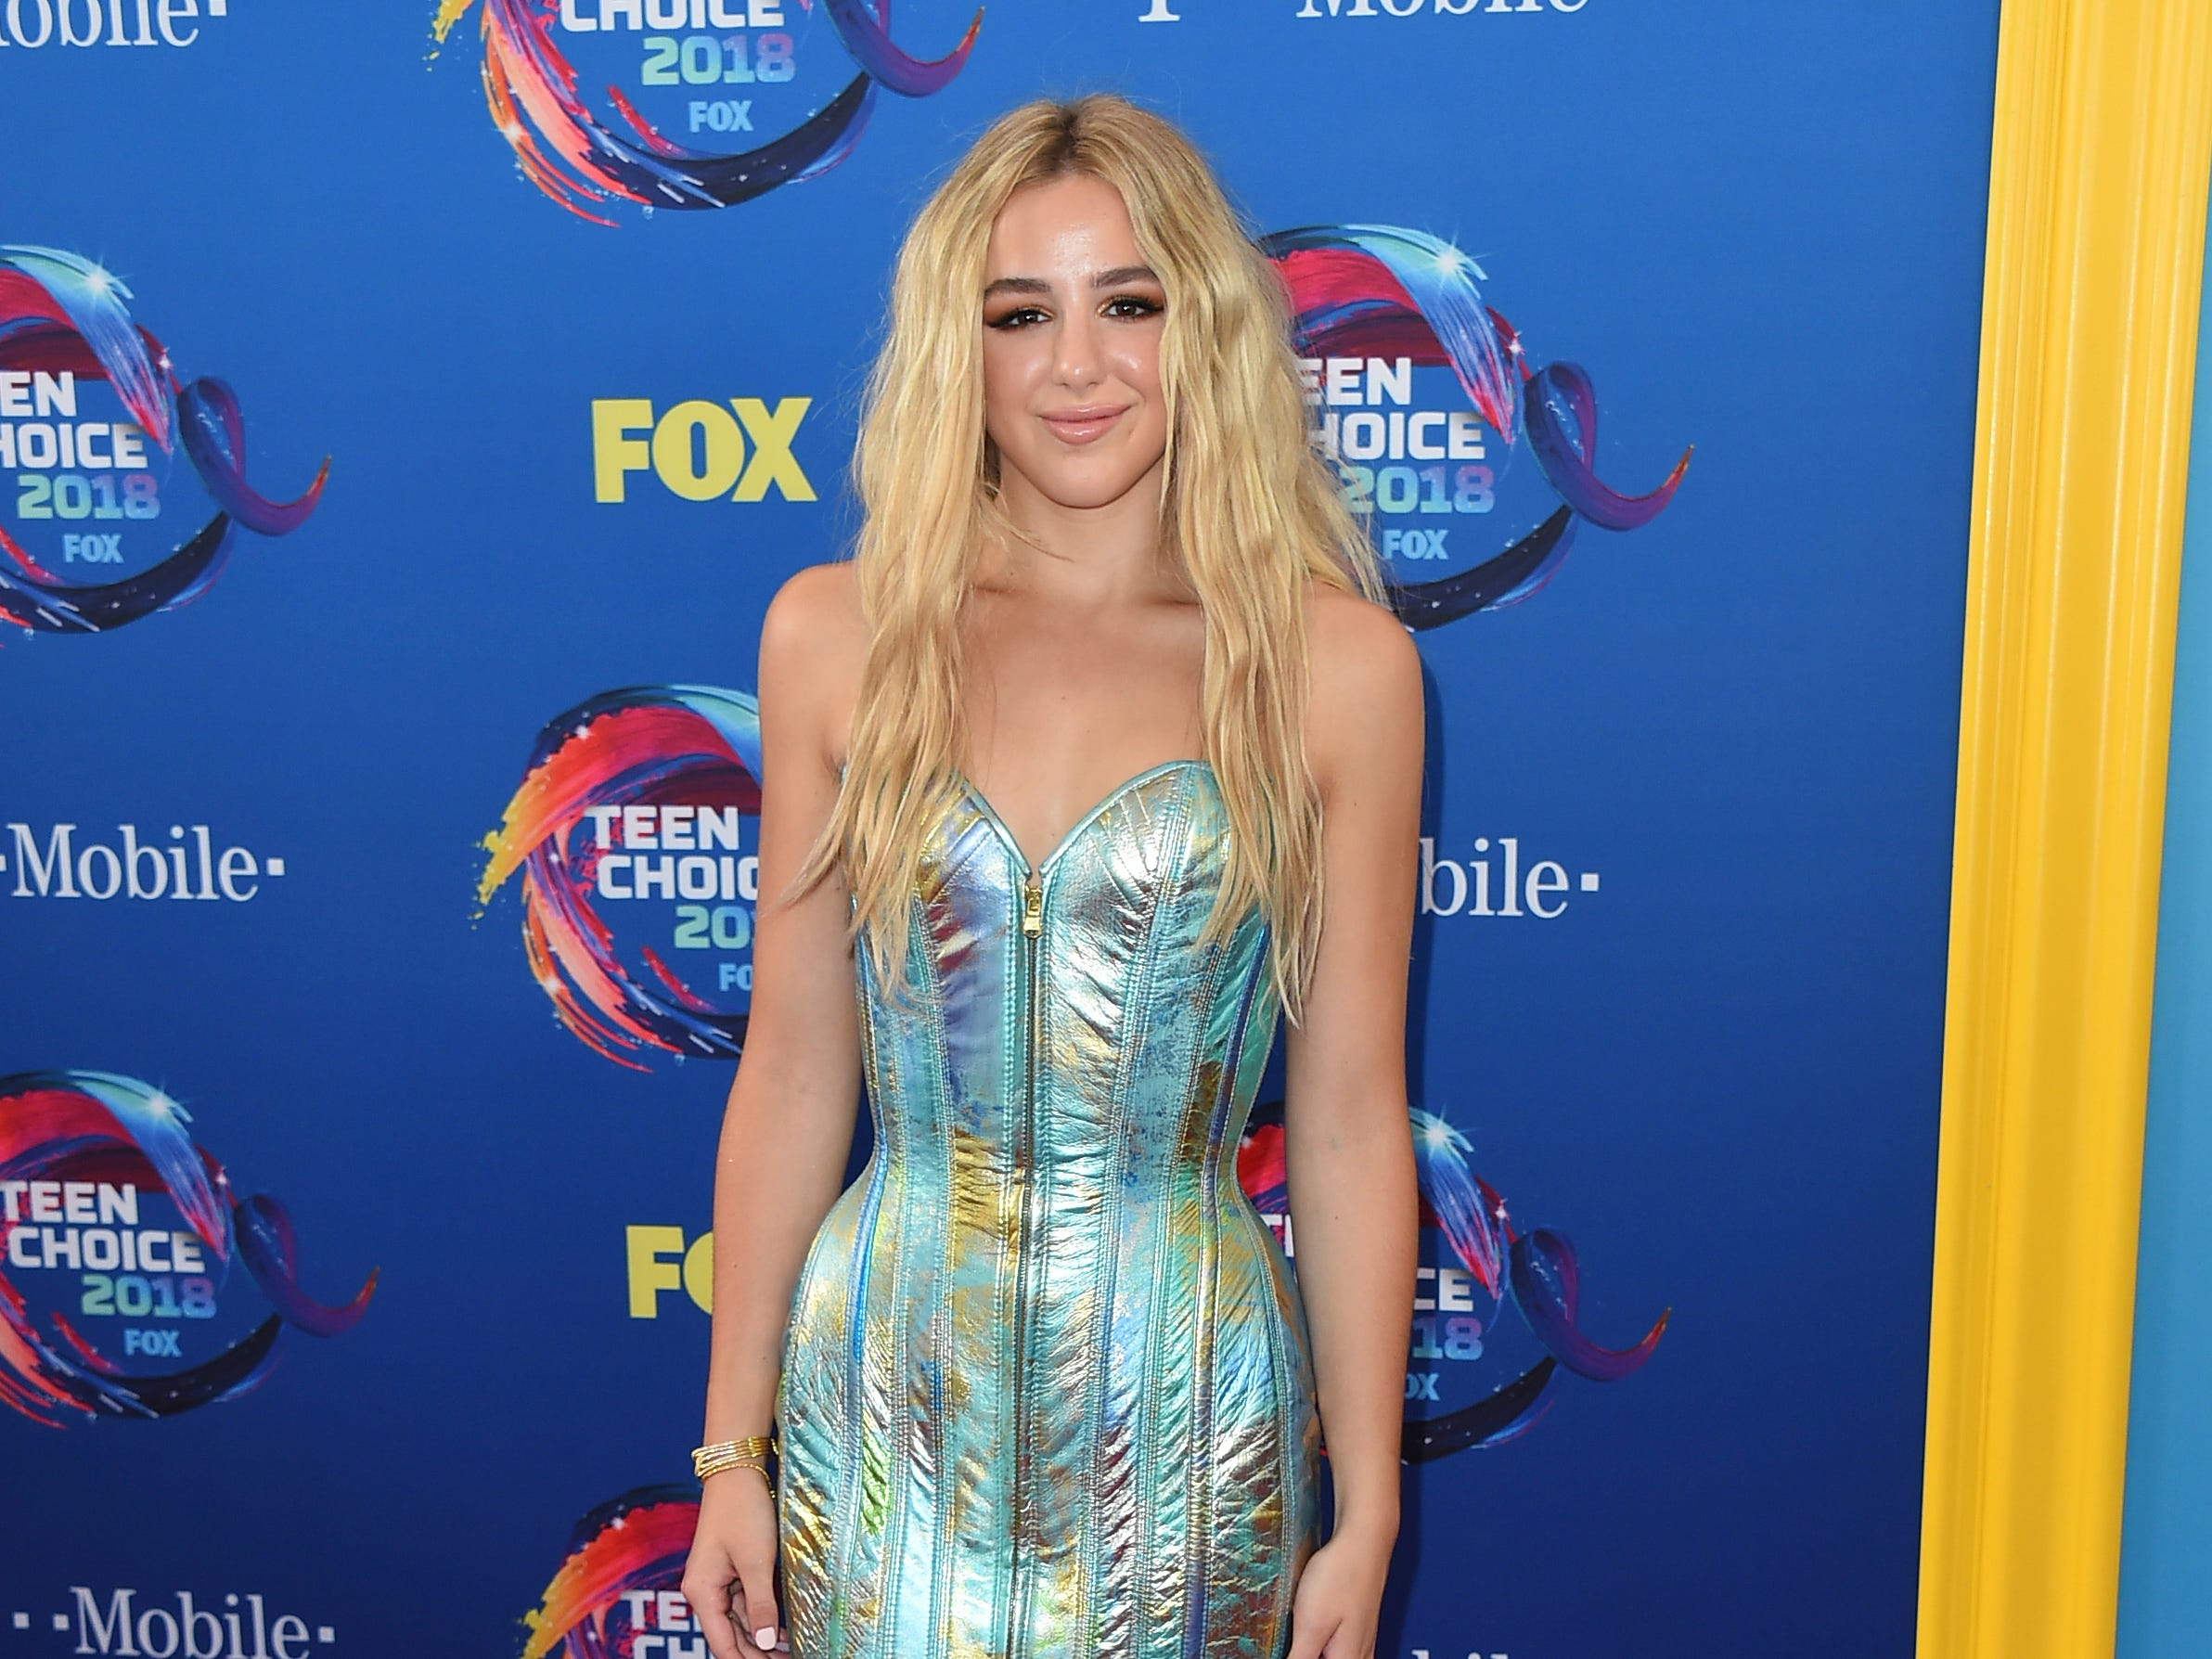 Chloe Lukasiak arrives at the Teen Choice Awards at The Forum on Sunday, Aug. 12, 2018, in Inglewood, Calif. (Photo by Jordan Strauss/Invision/AP) ORG XMIT: CAPM109